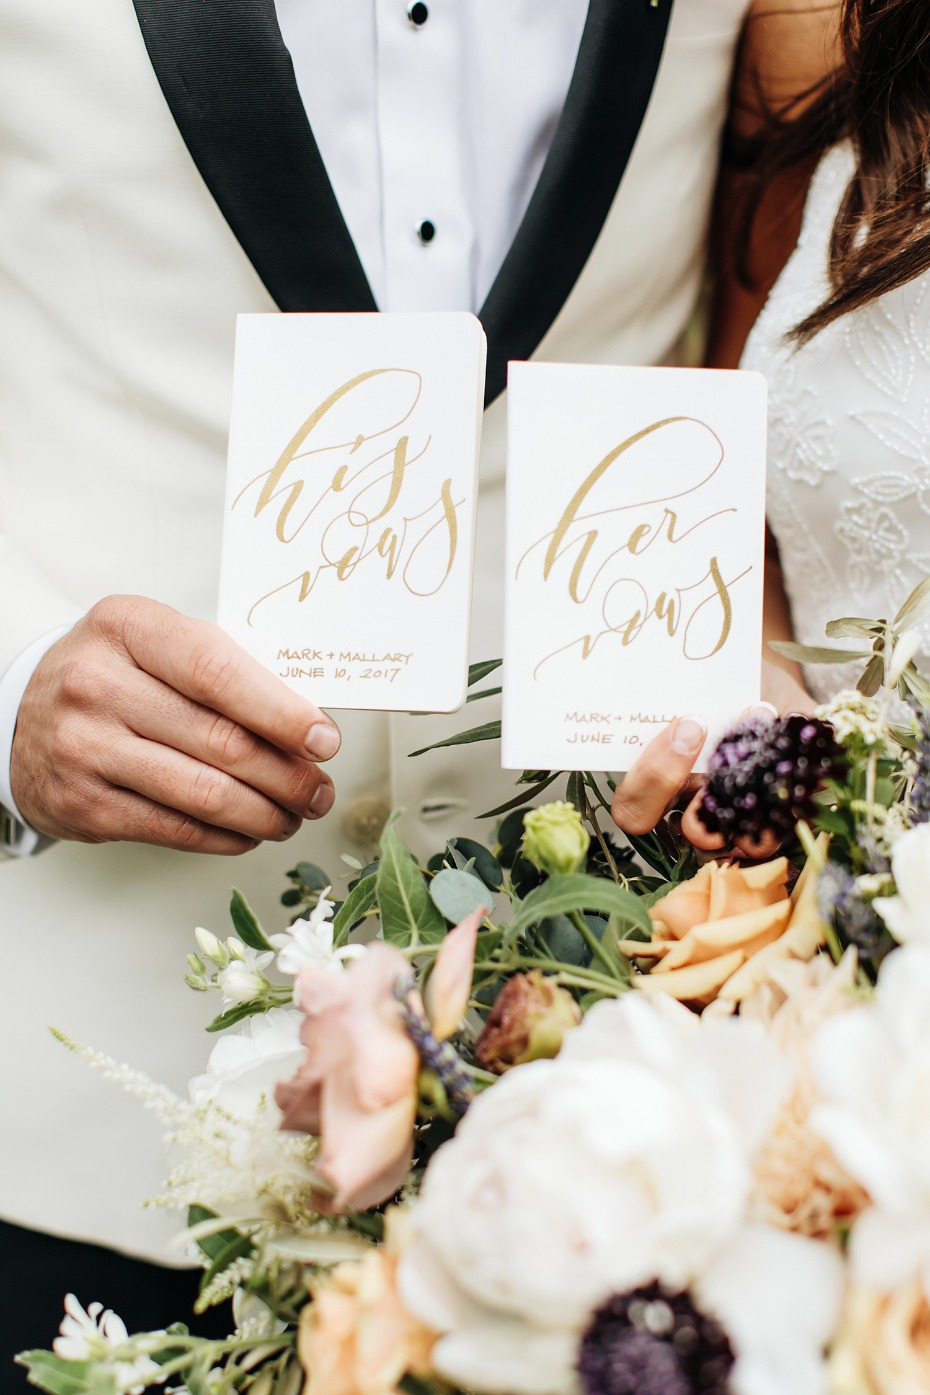 his and hers vow books for a private vow reading